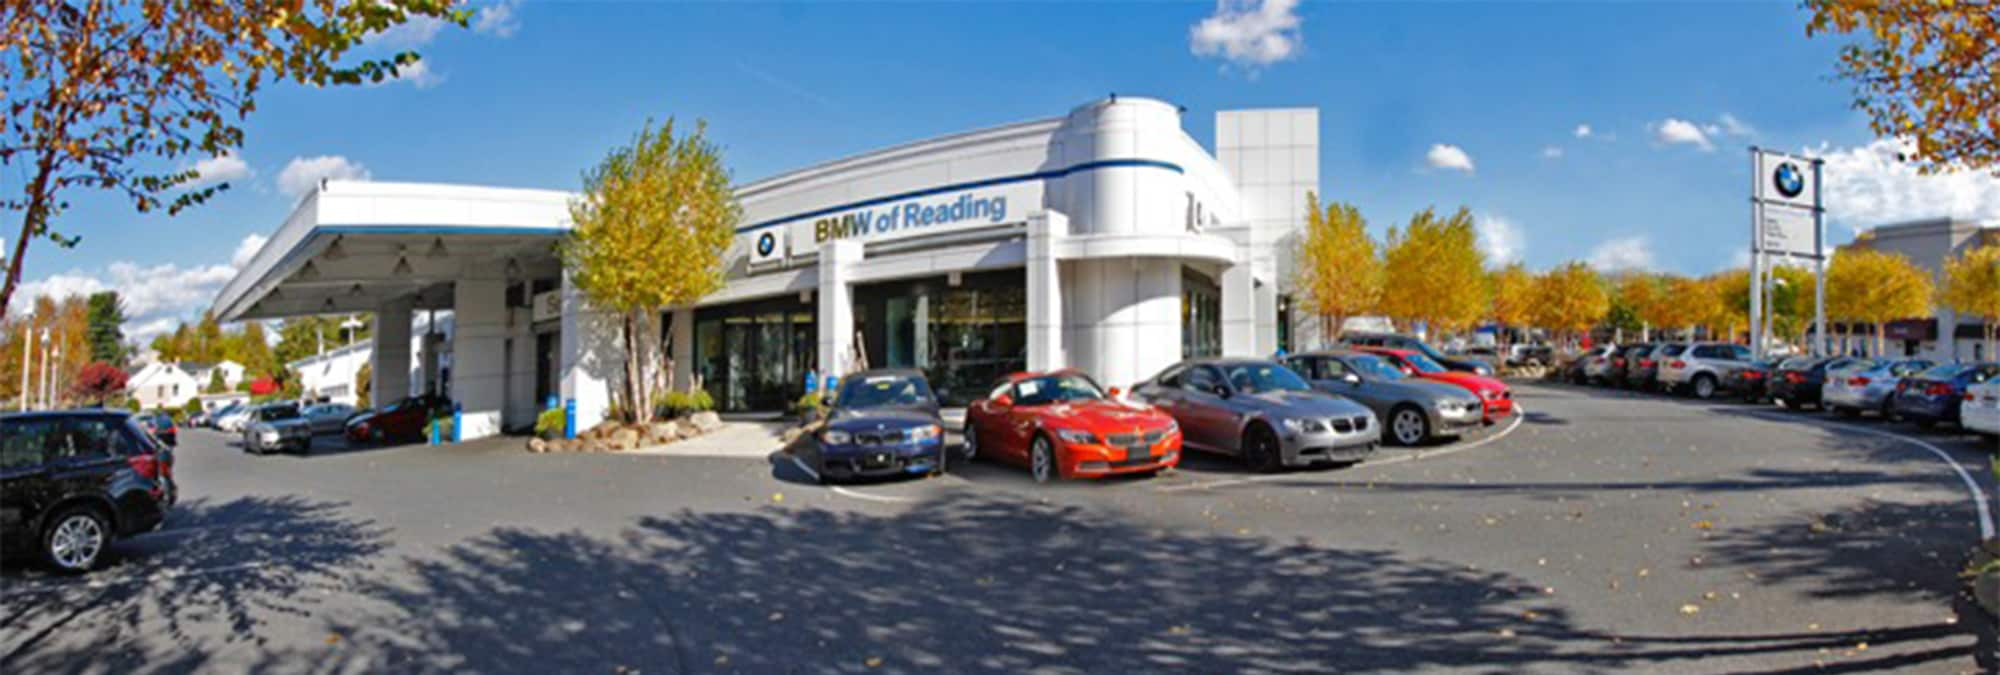 Directions To Bmw Of Reading Your Bmw Home